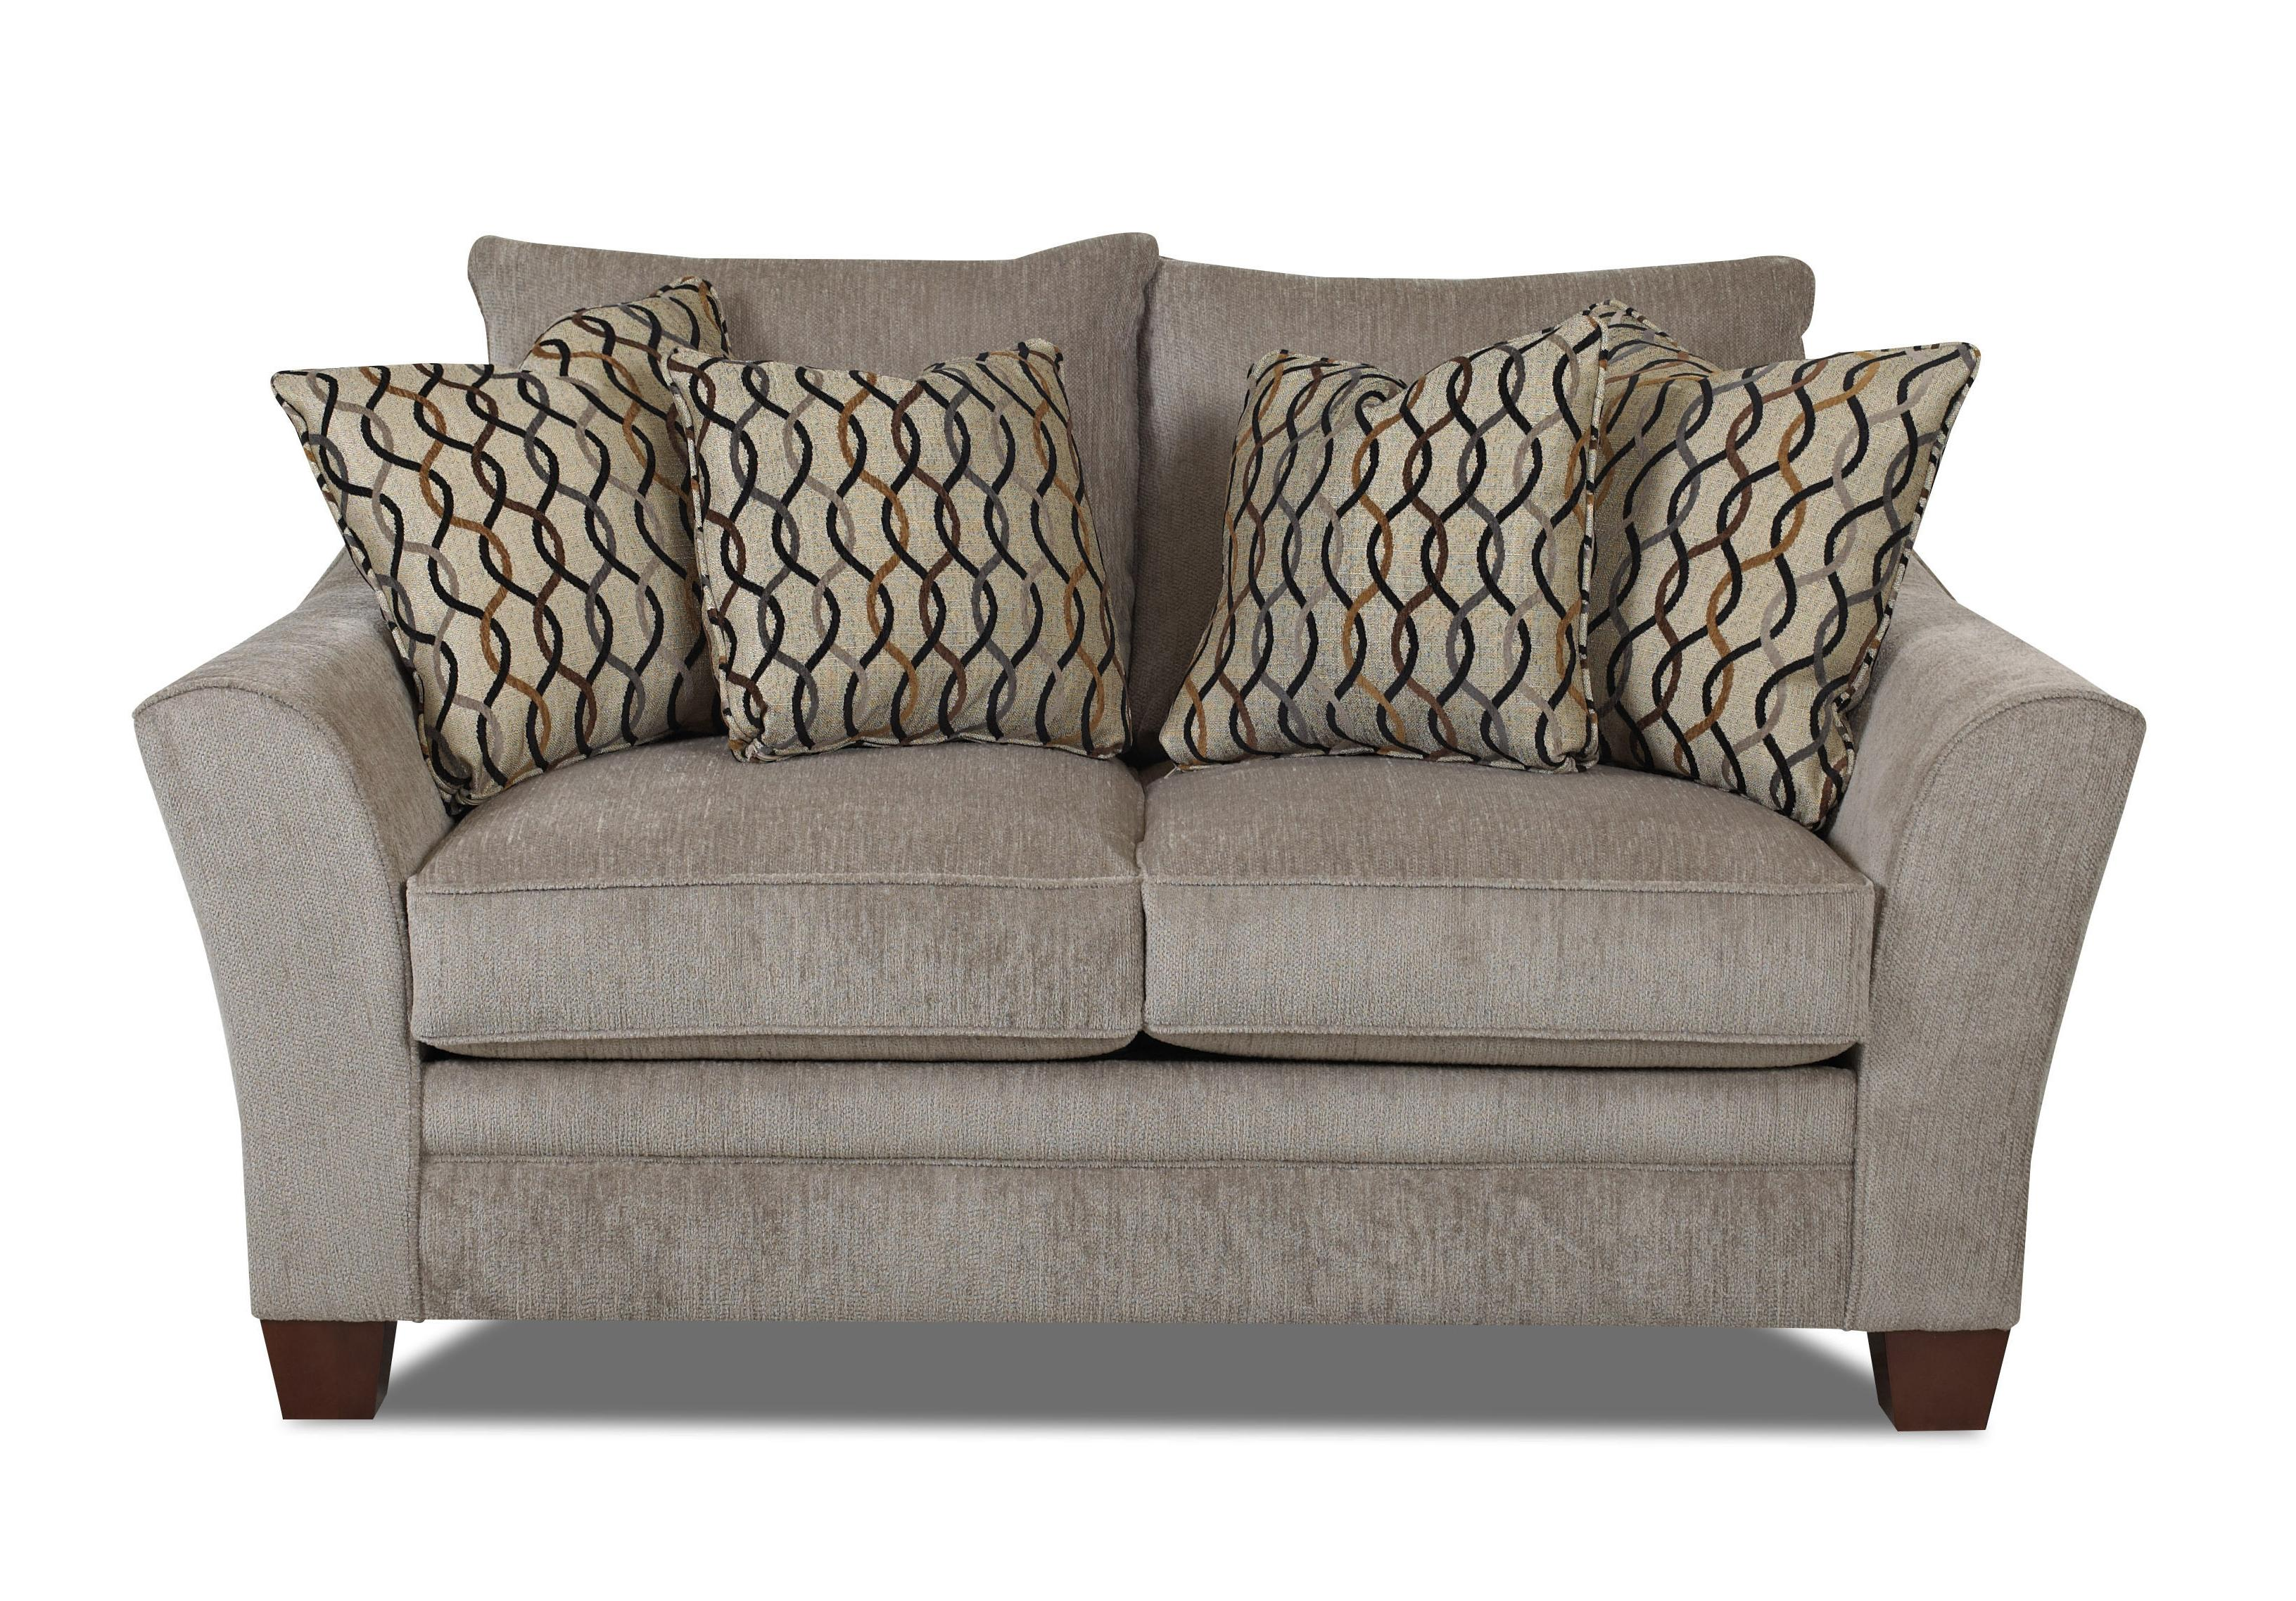 Klaussner Posen Contemporary Loveseat - Item Number: 83844 LS